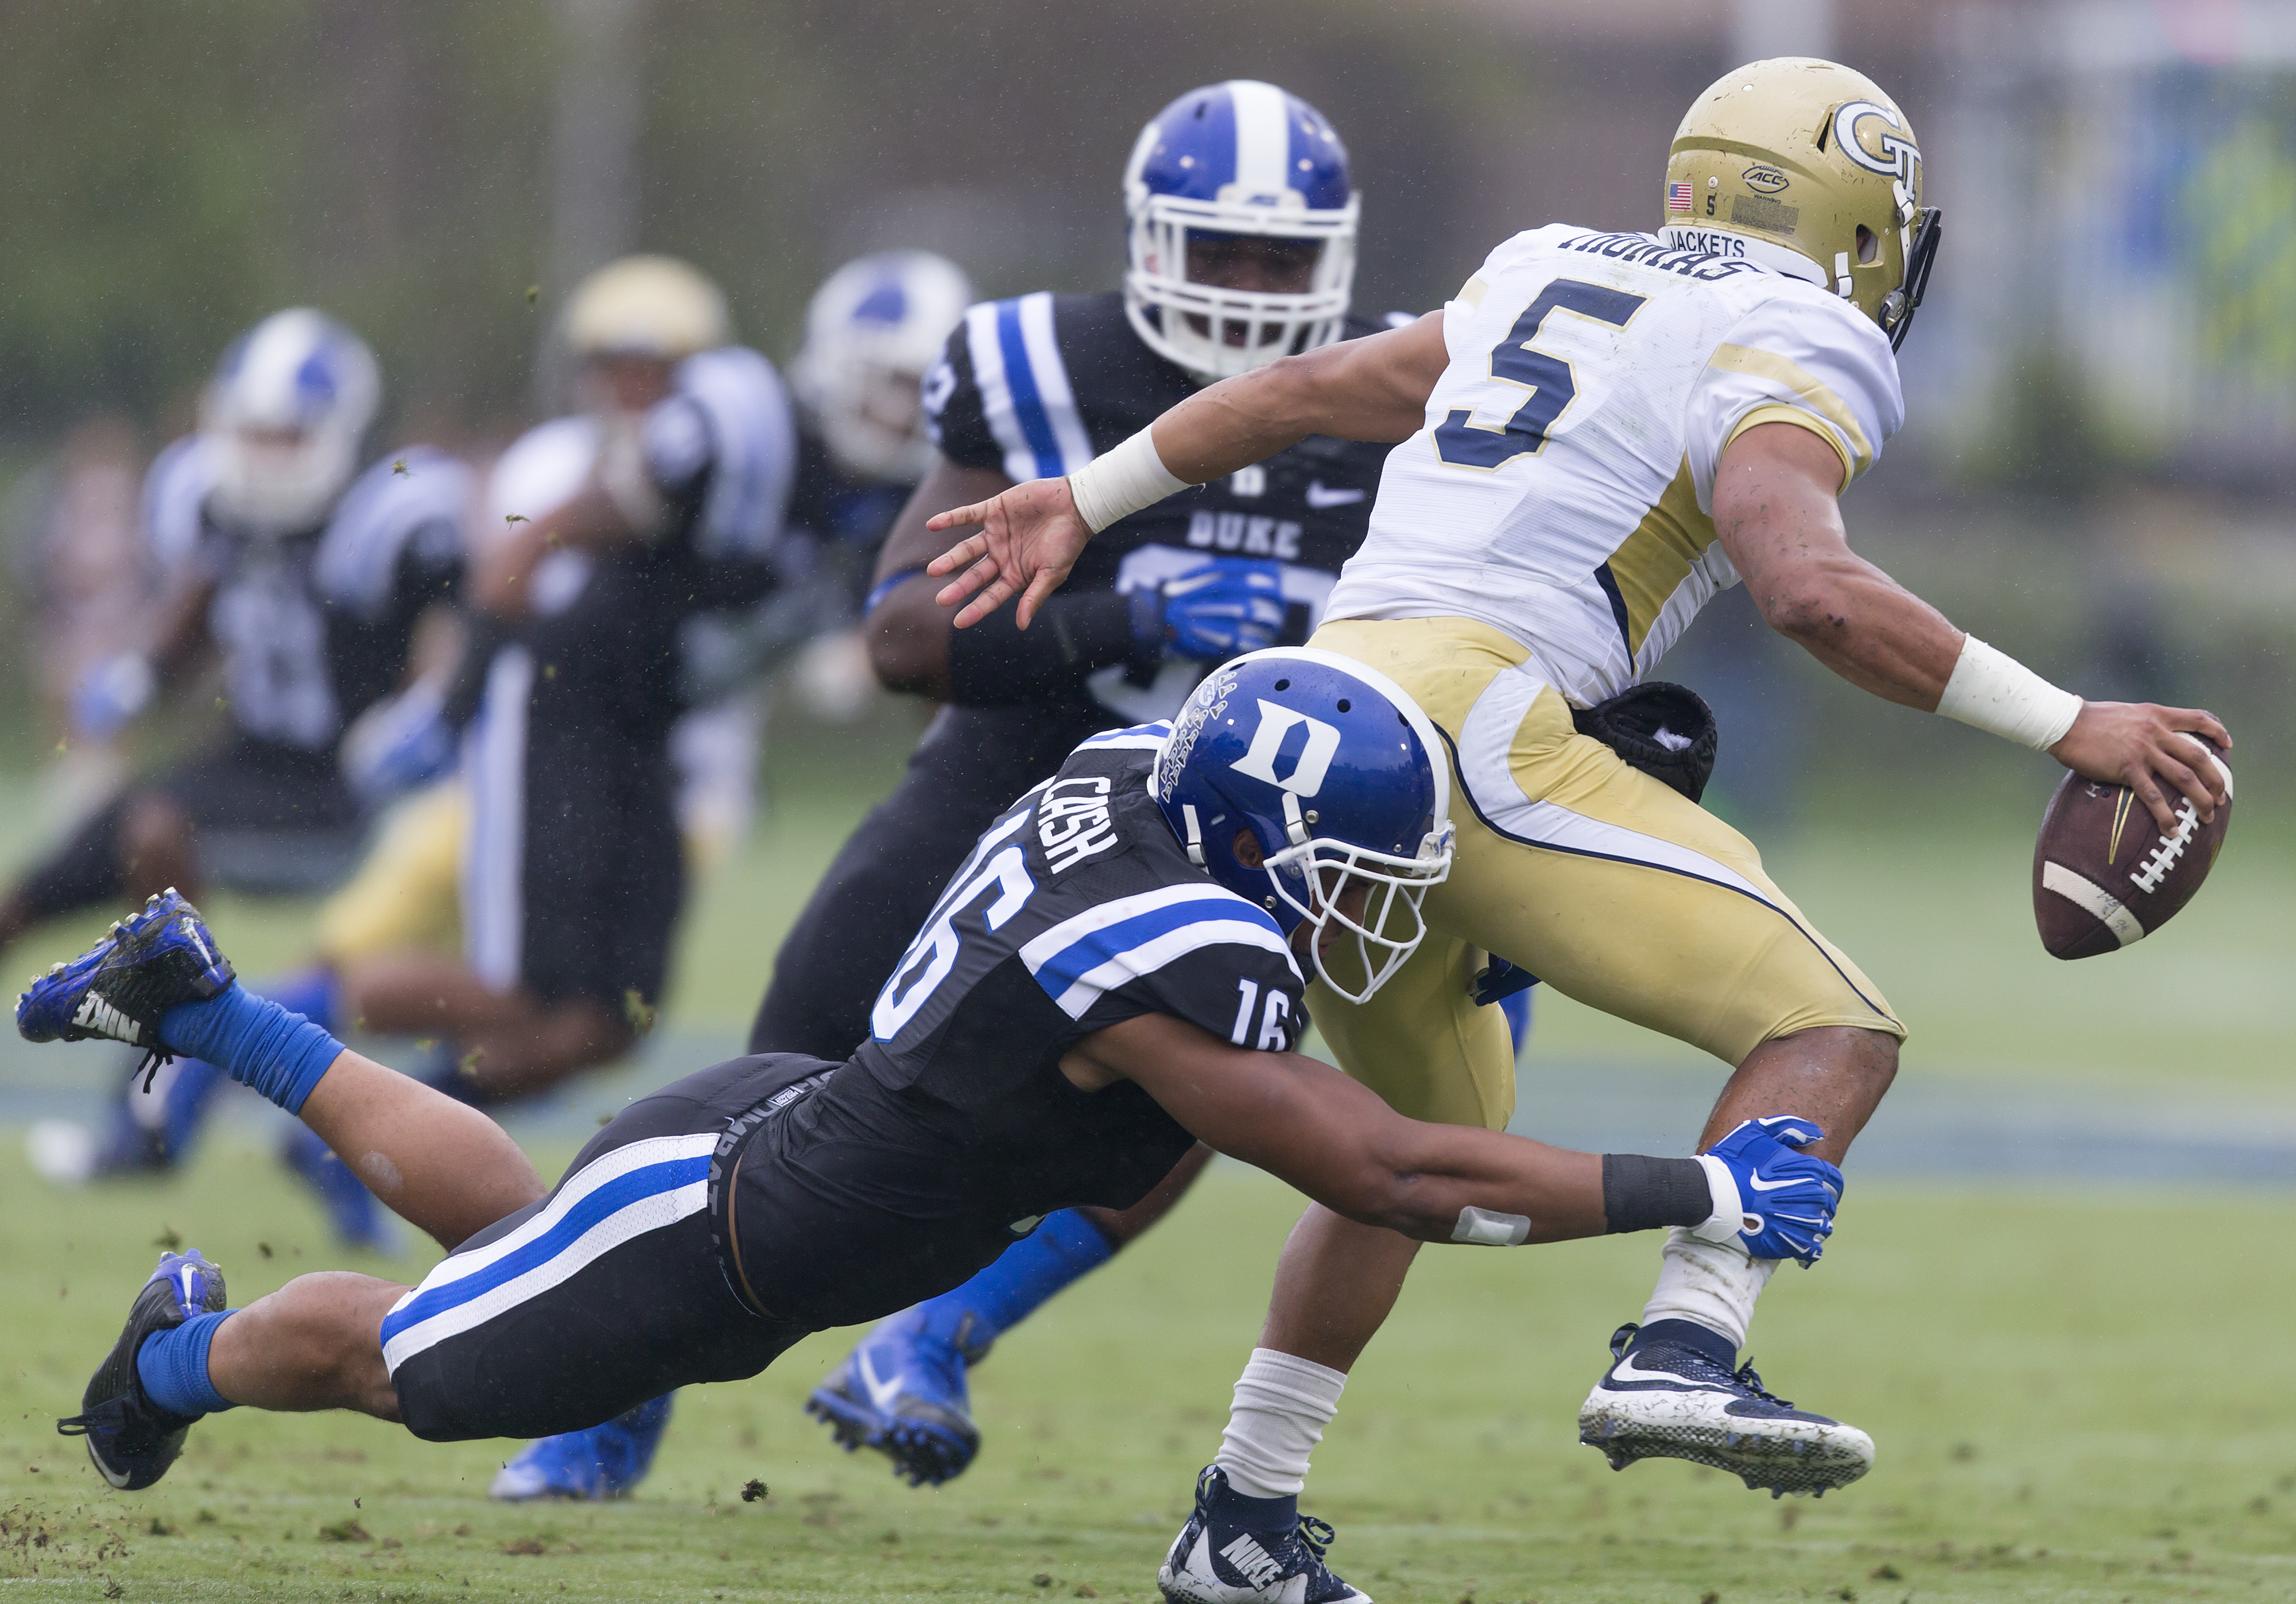 FILE - In this Sept. 26, 2015, file photo, Duke's Jeremy Cash tackles Georgia Tech's Justin Thomas for a loss during the first half of an NCAA college football game, in Durham, N.C. Cash has been named to the AP All-American football team. (AP Photo/Rob B